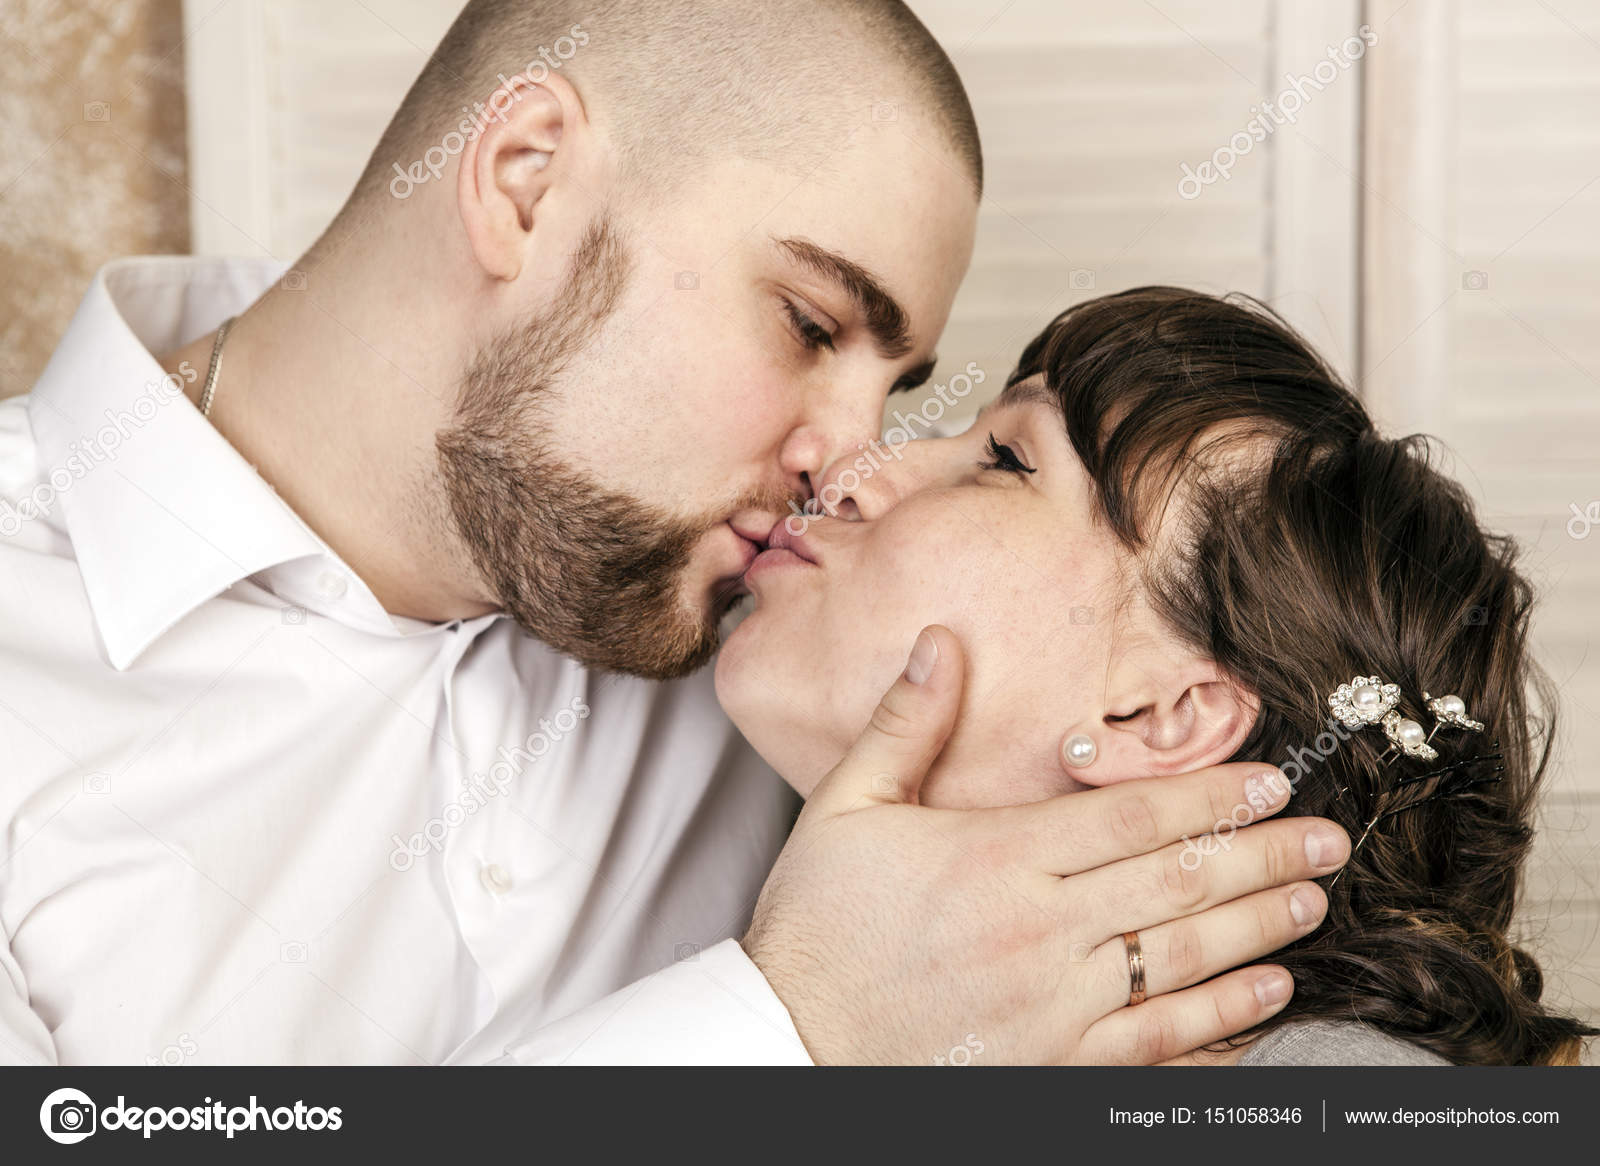 man and woman kissing on the lips